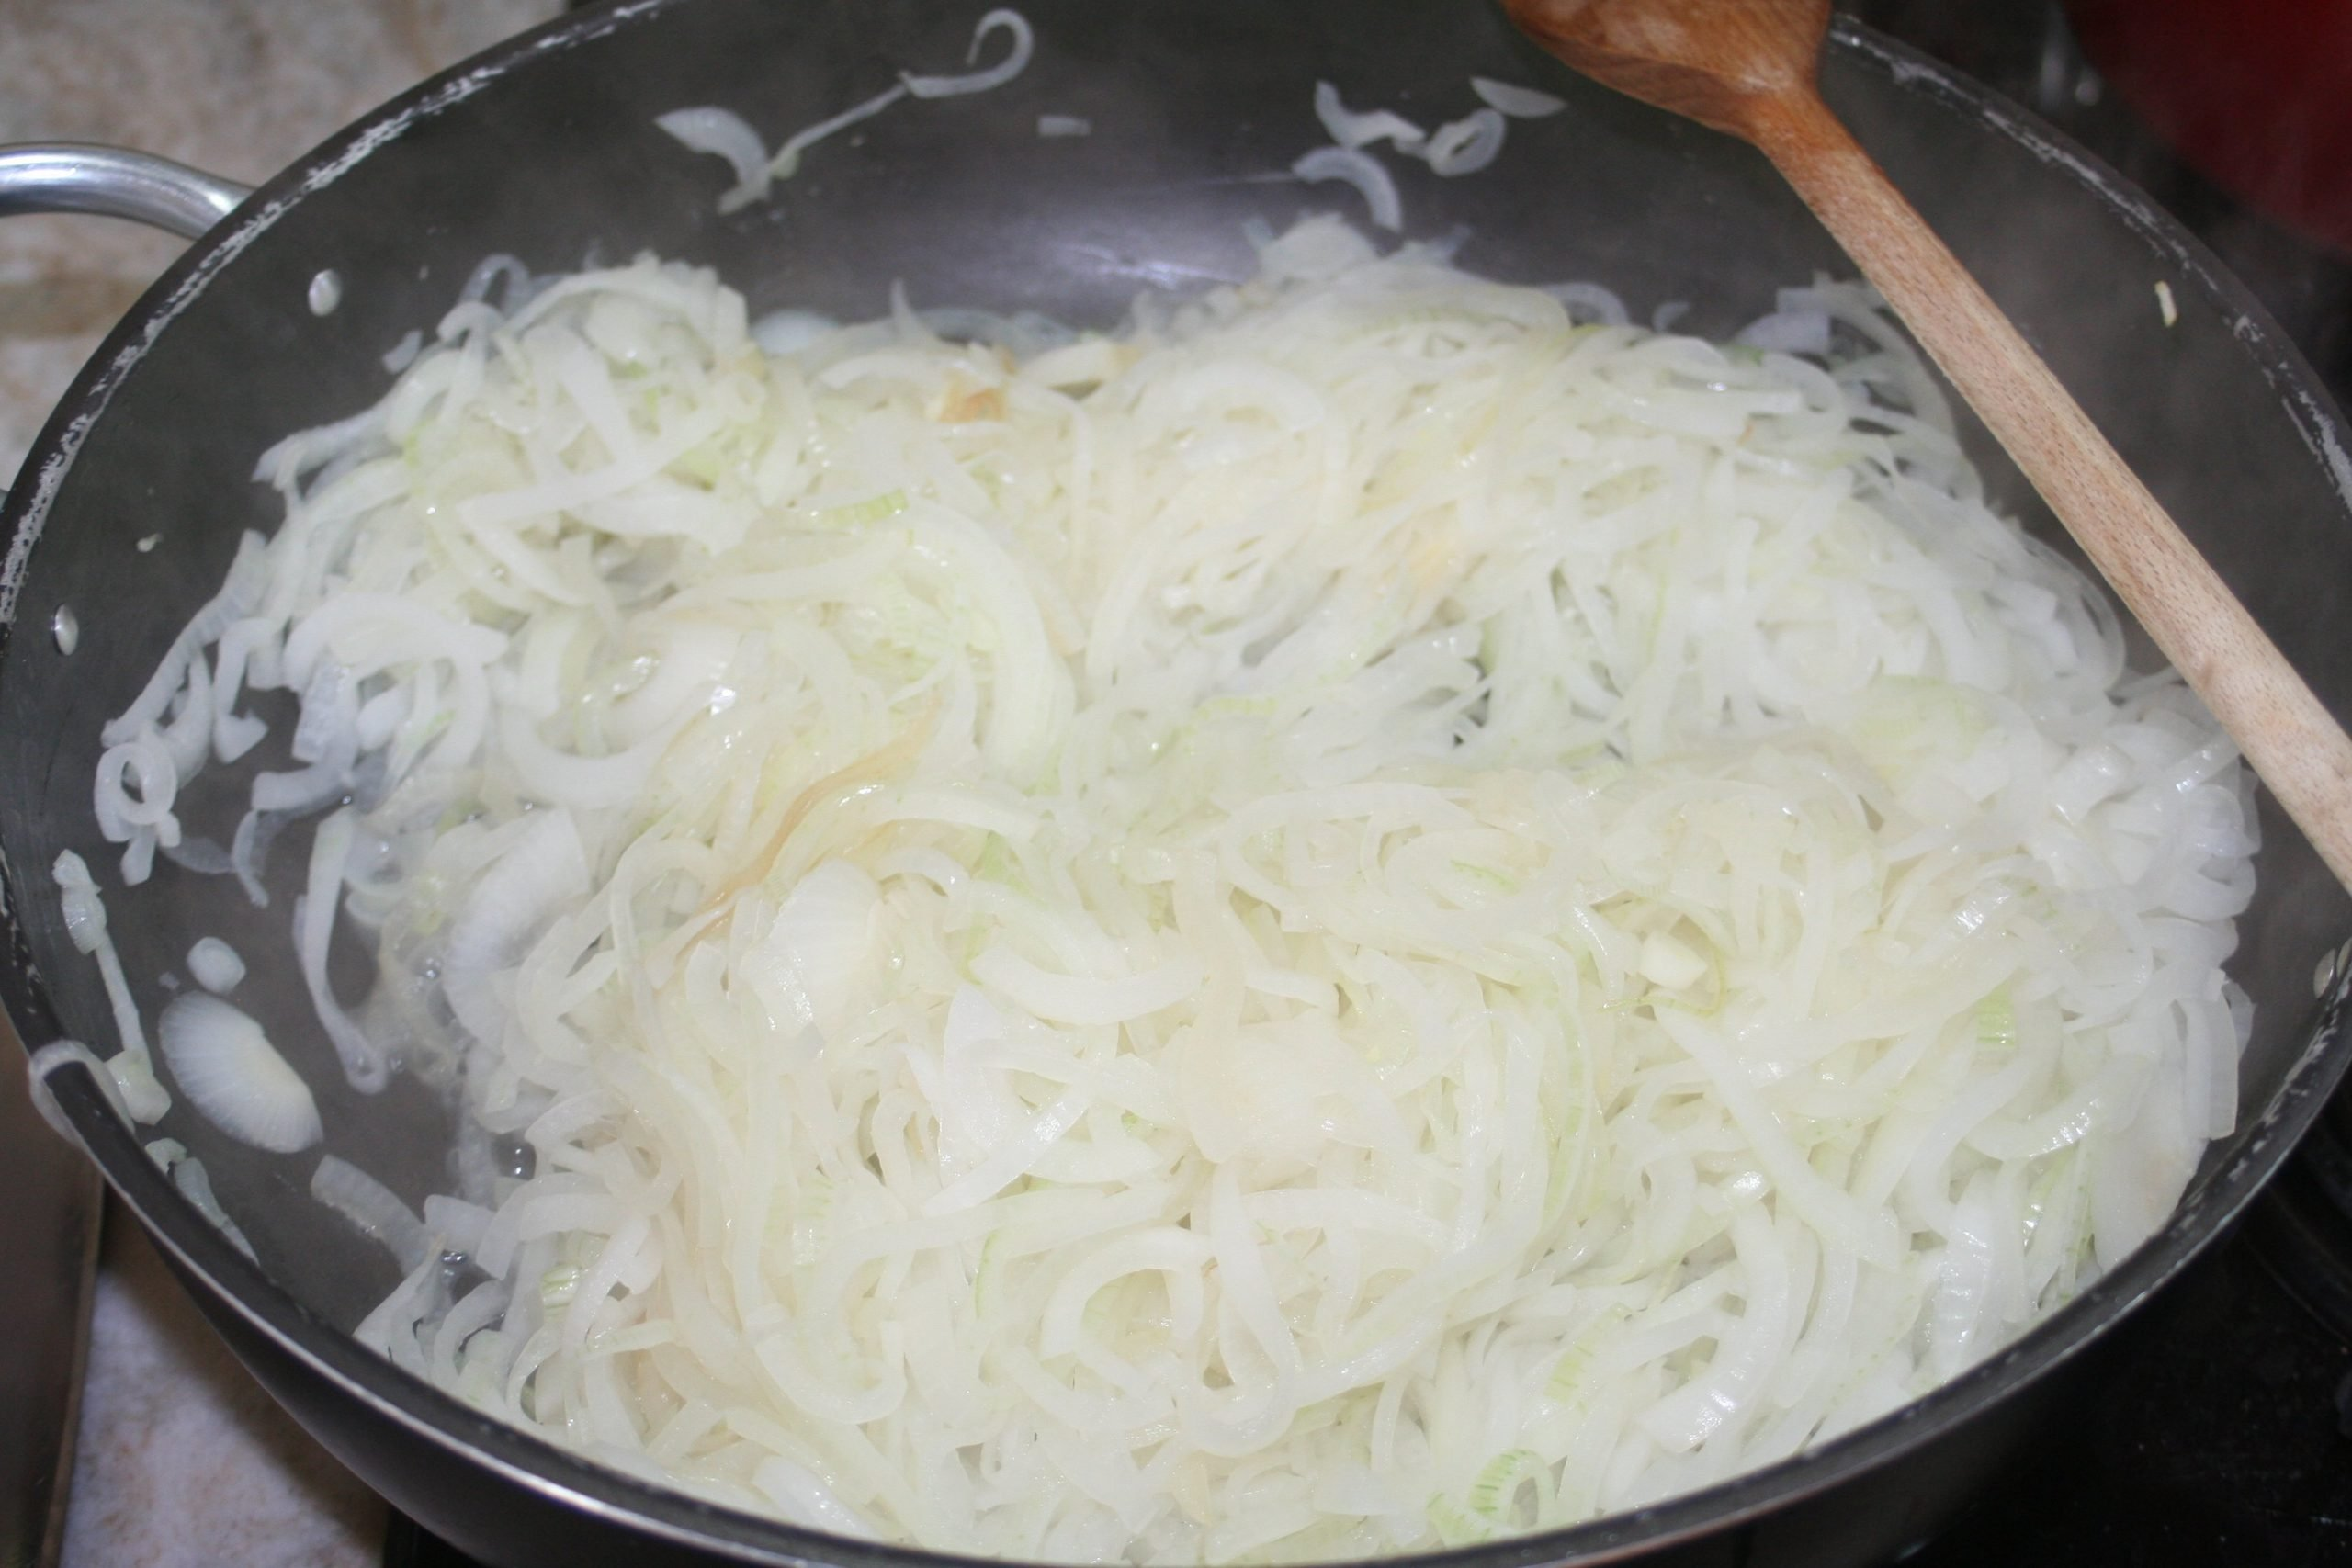 Onion for Sarde in Saor